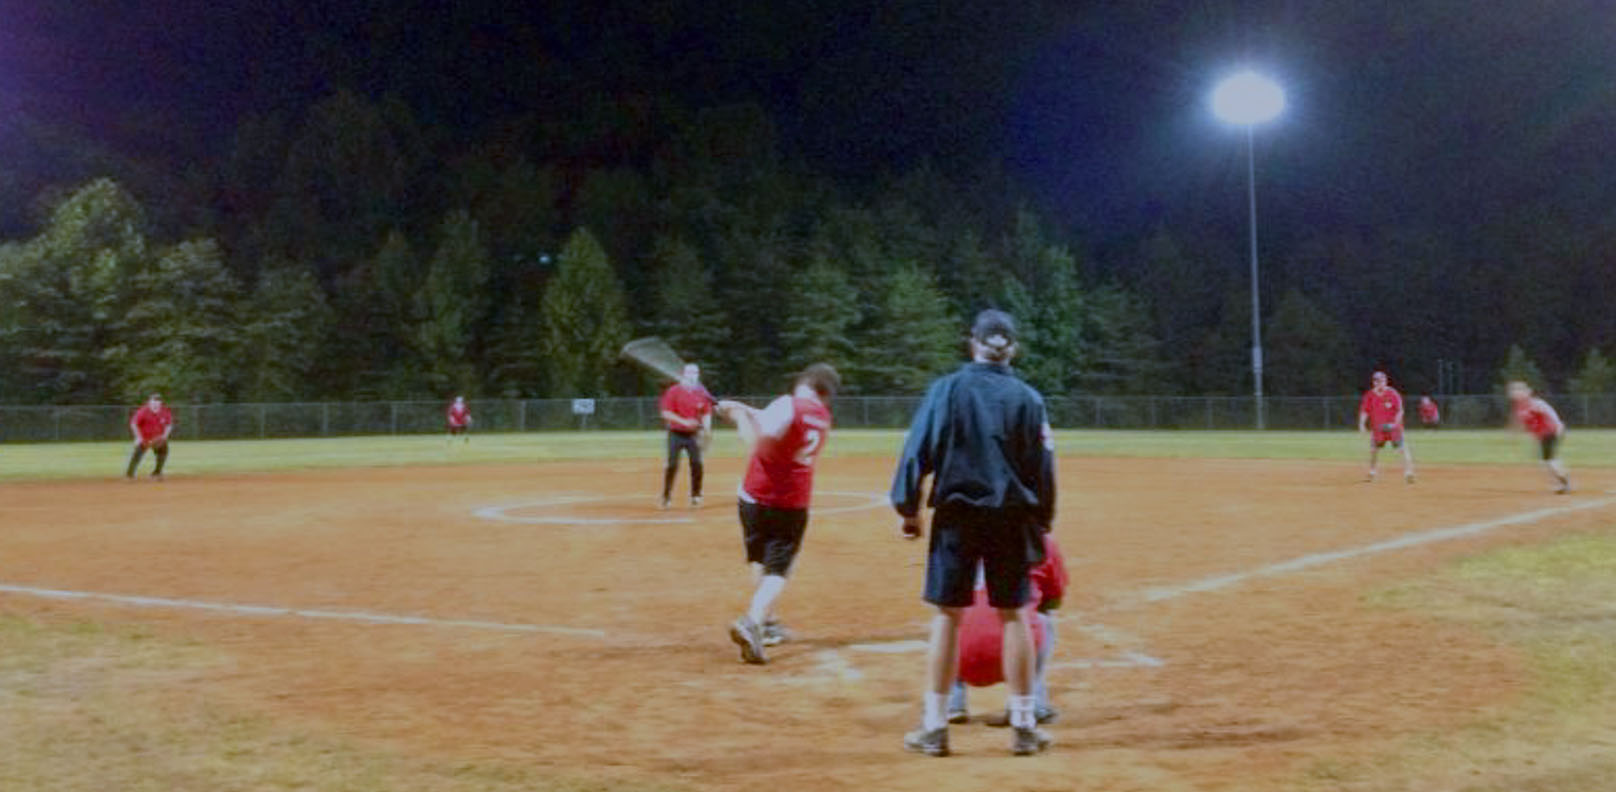 The study of ballfields in Stafford County improved public access and focused future development of new fields. Image courtesy of Stafford County.